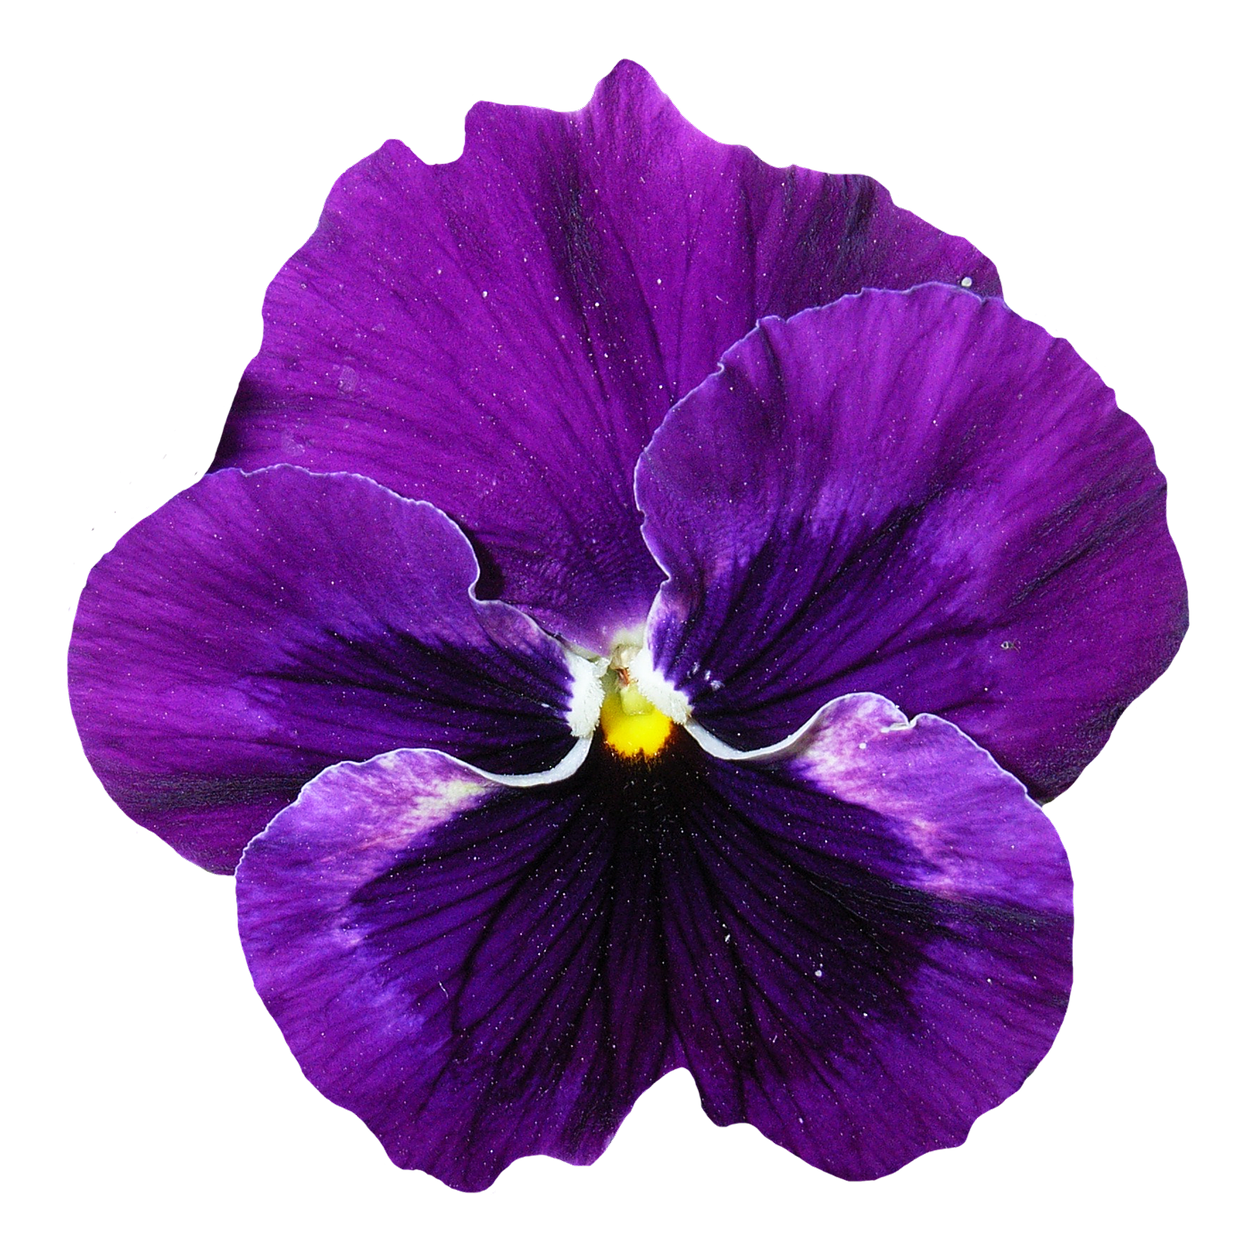 Pansy Flower Png Transparent Purple 6489